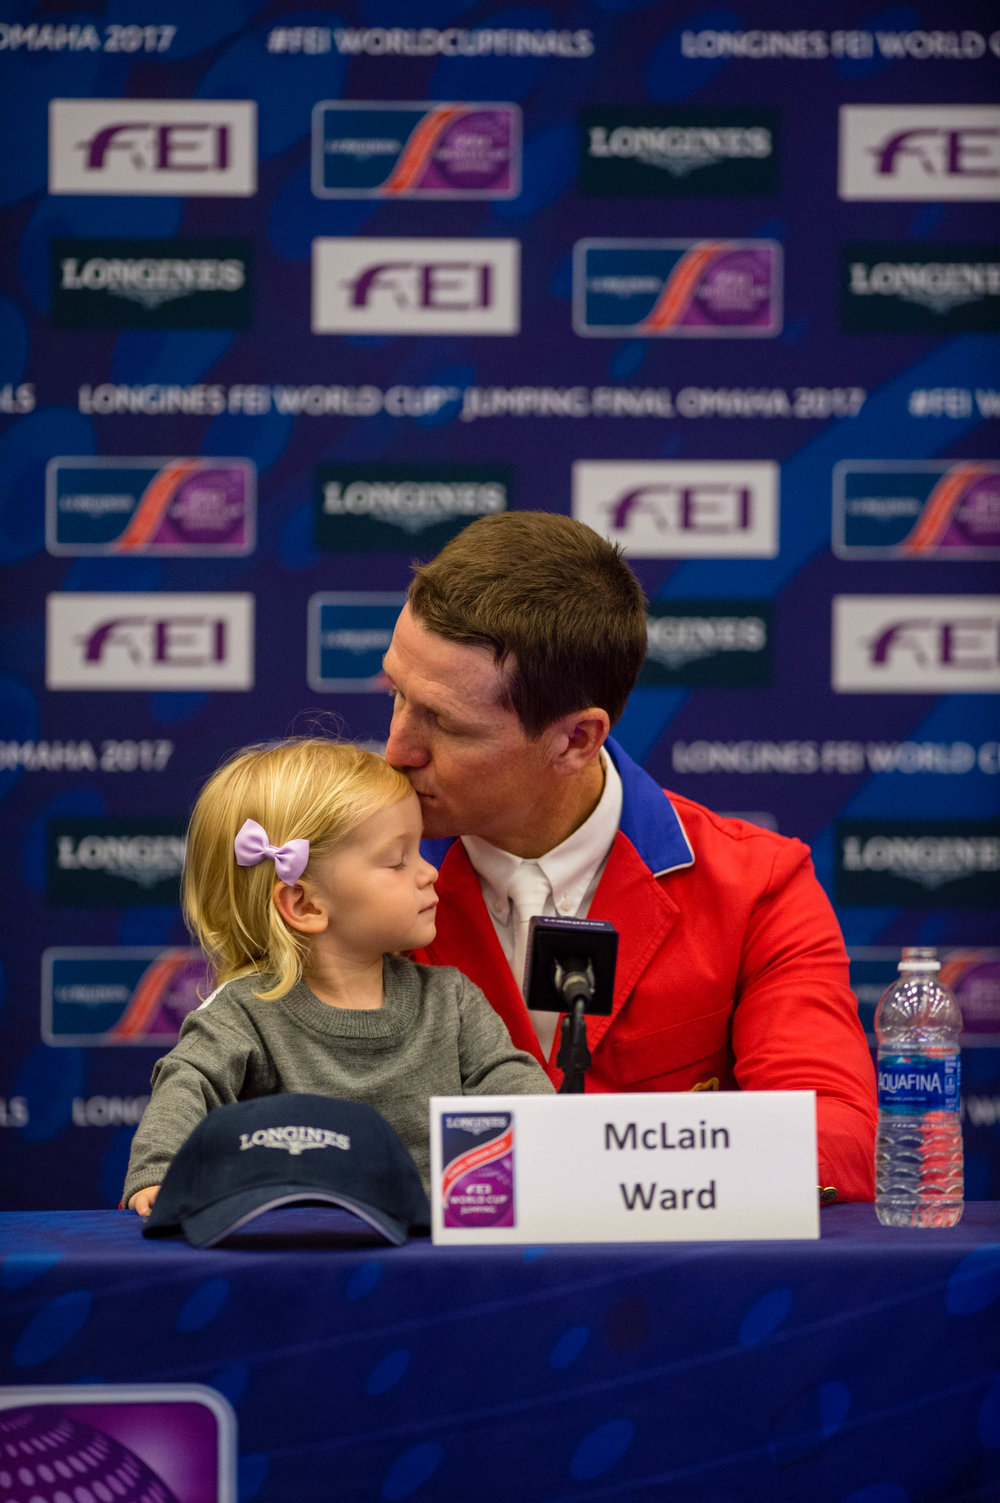 McLain Ward shares a quiet moment with his daughter Lilly during a press conference at the World Cup Finals in Omaha.